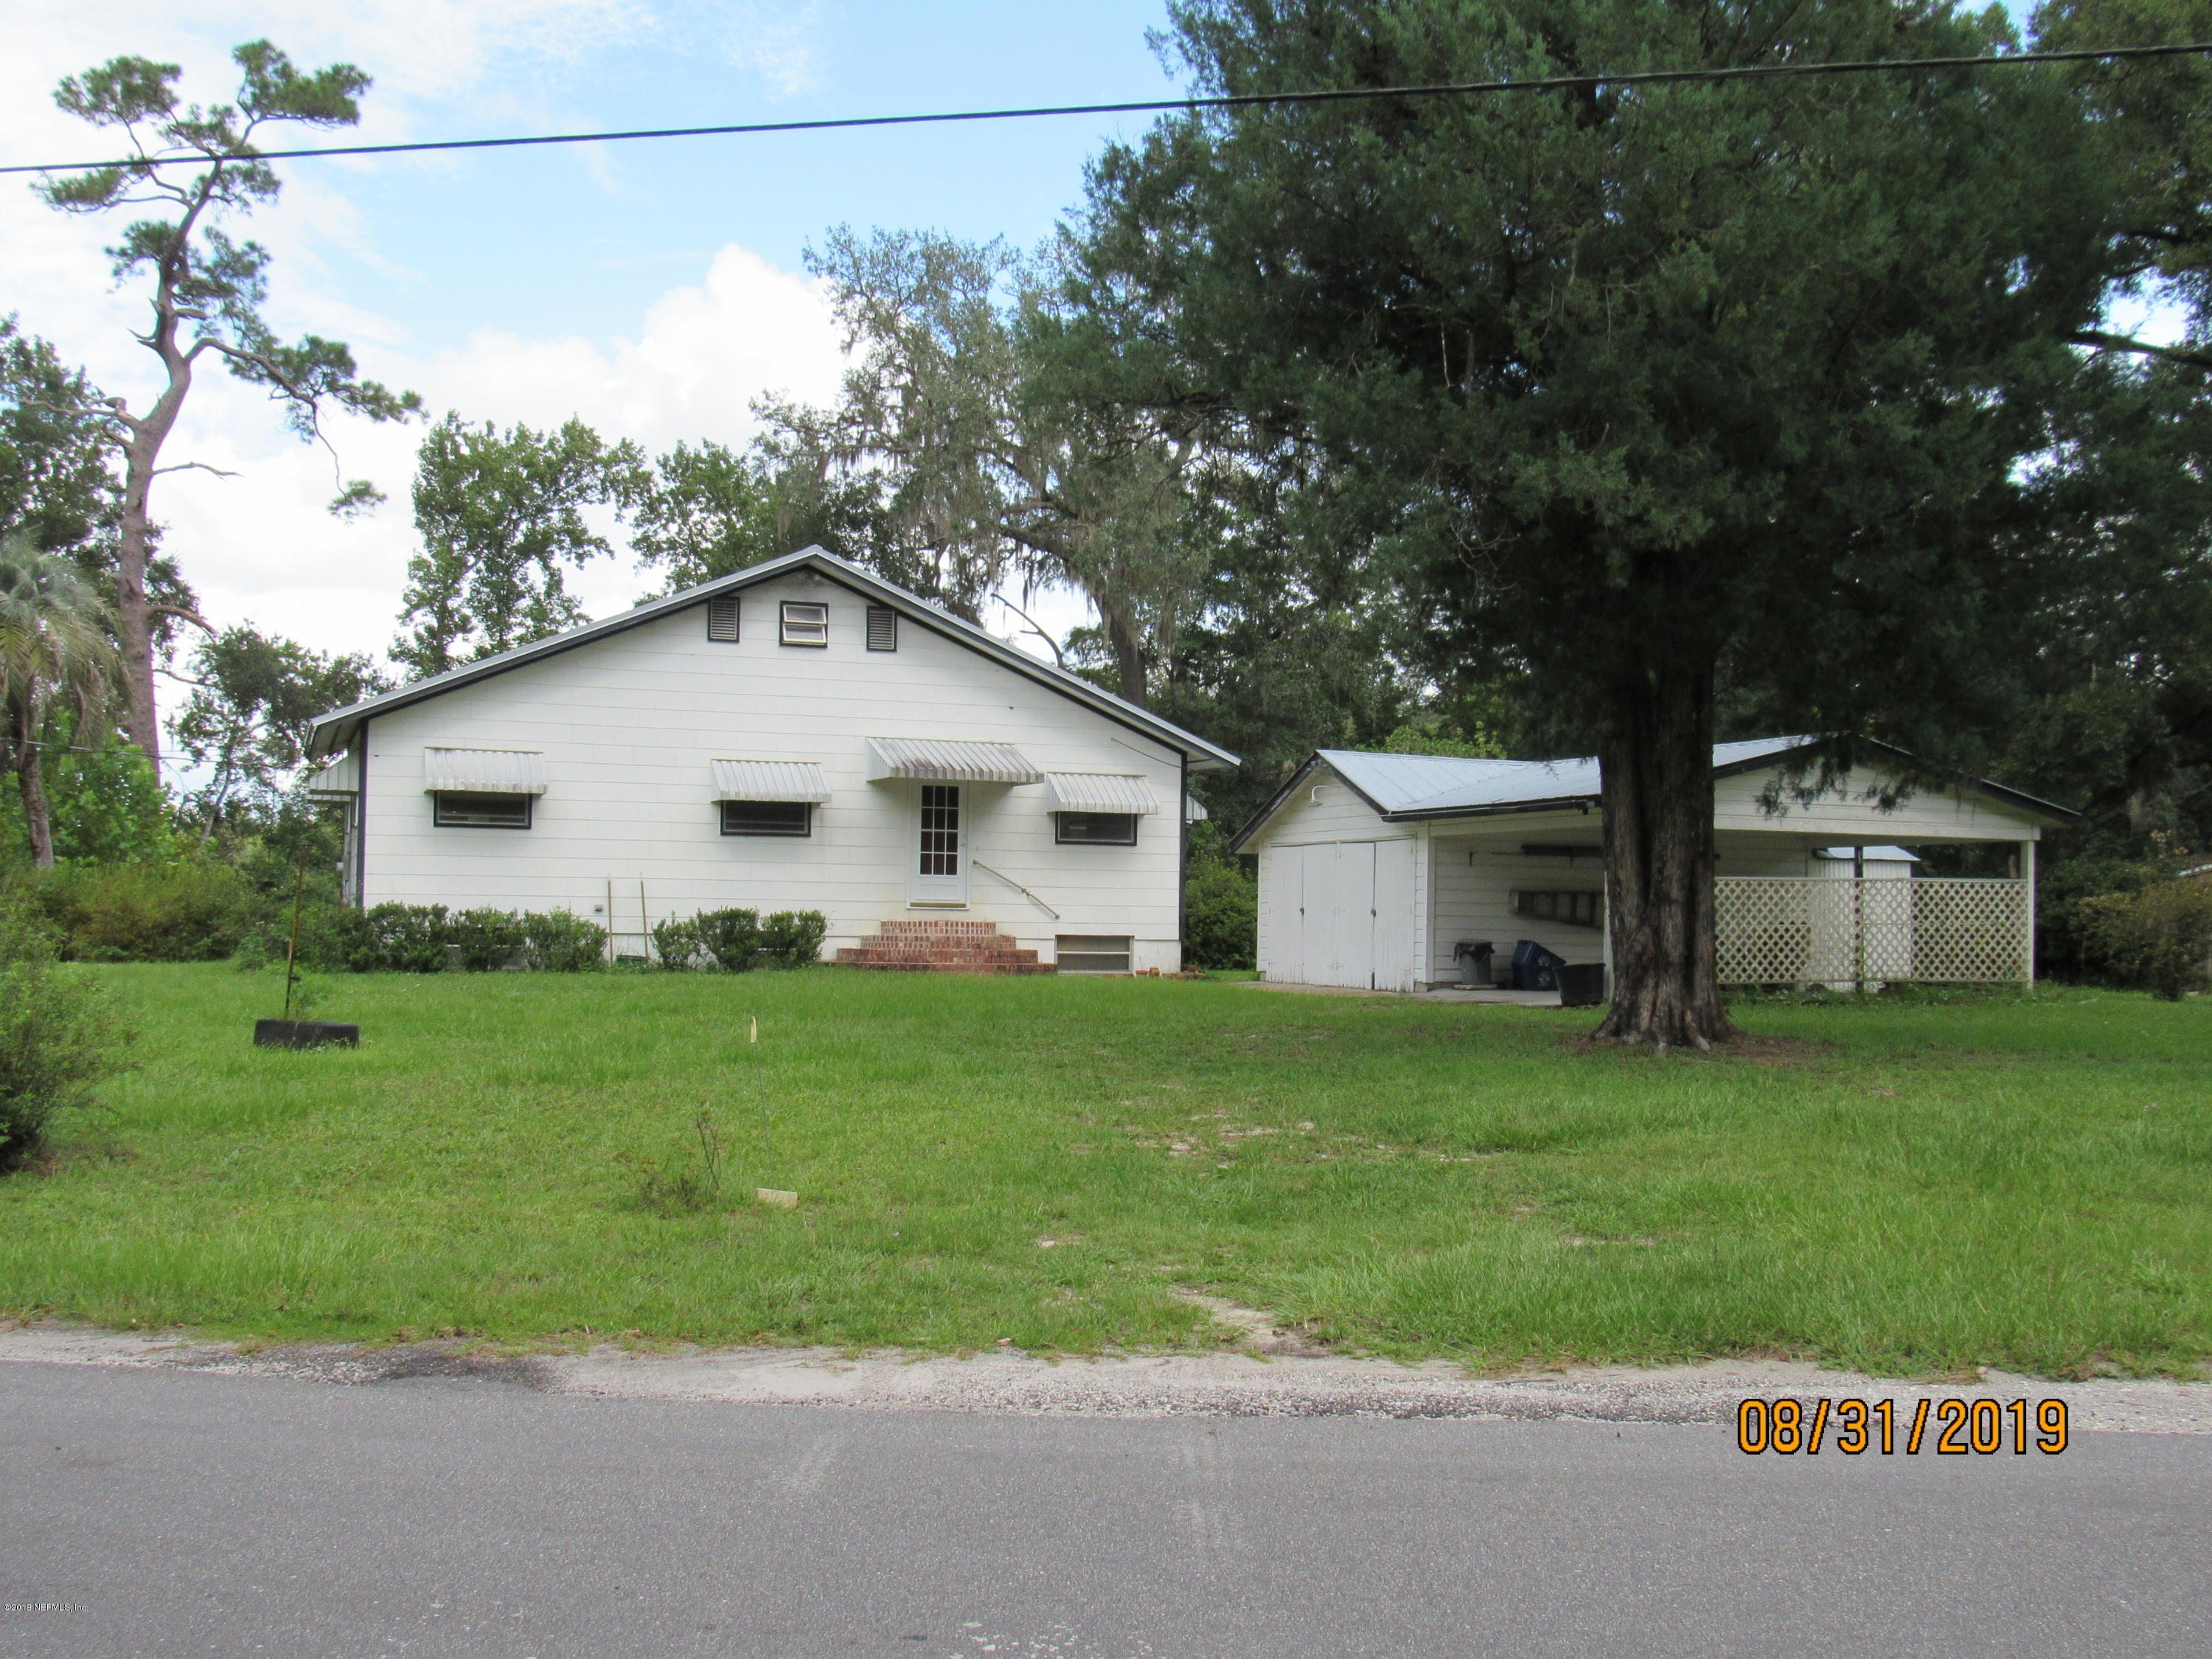 3772 MAIN, MIDDLEBURG, FLORIDA 32068, 2 Bedrooms Bedrooms, ,3 BathroomsBathrooms,Residential - single family,For sale,MAIN,1013769